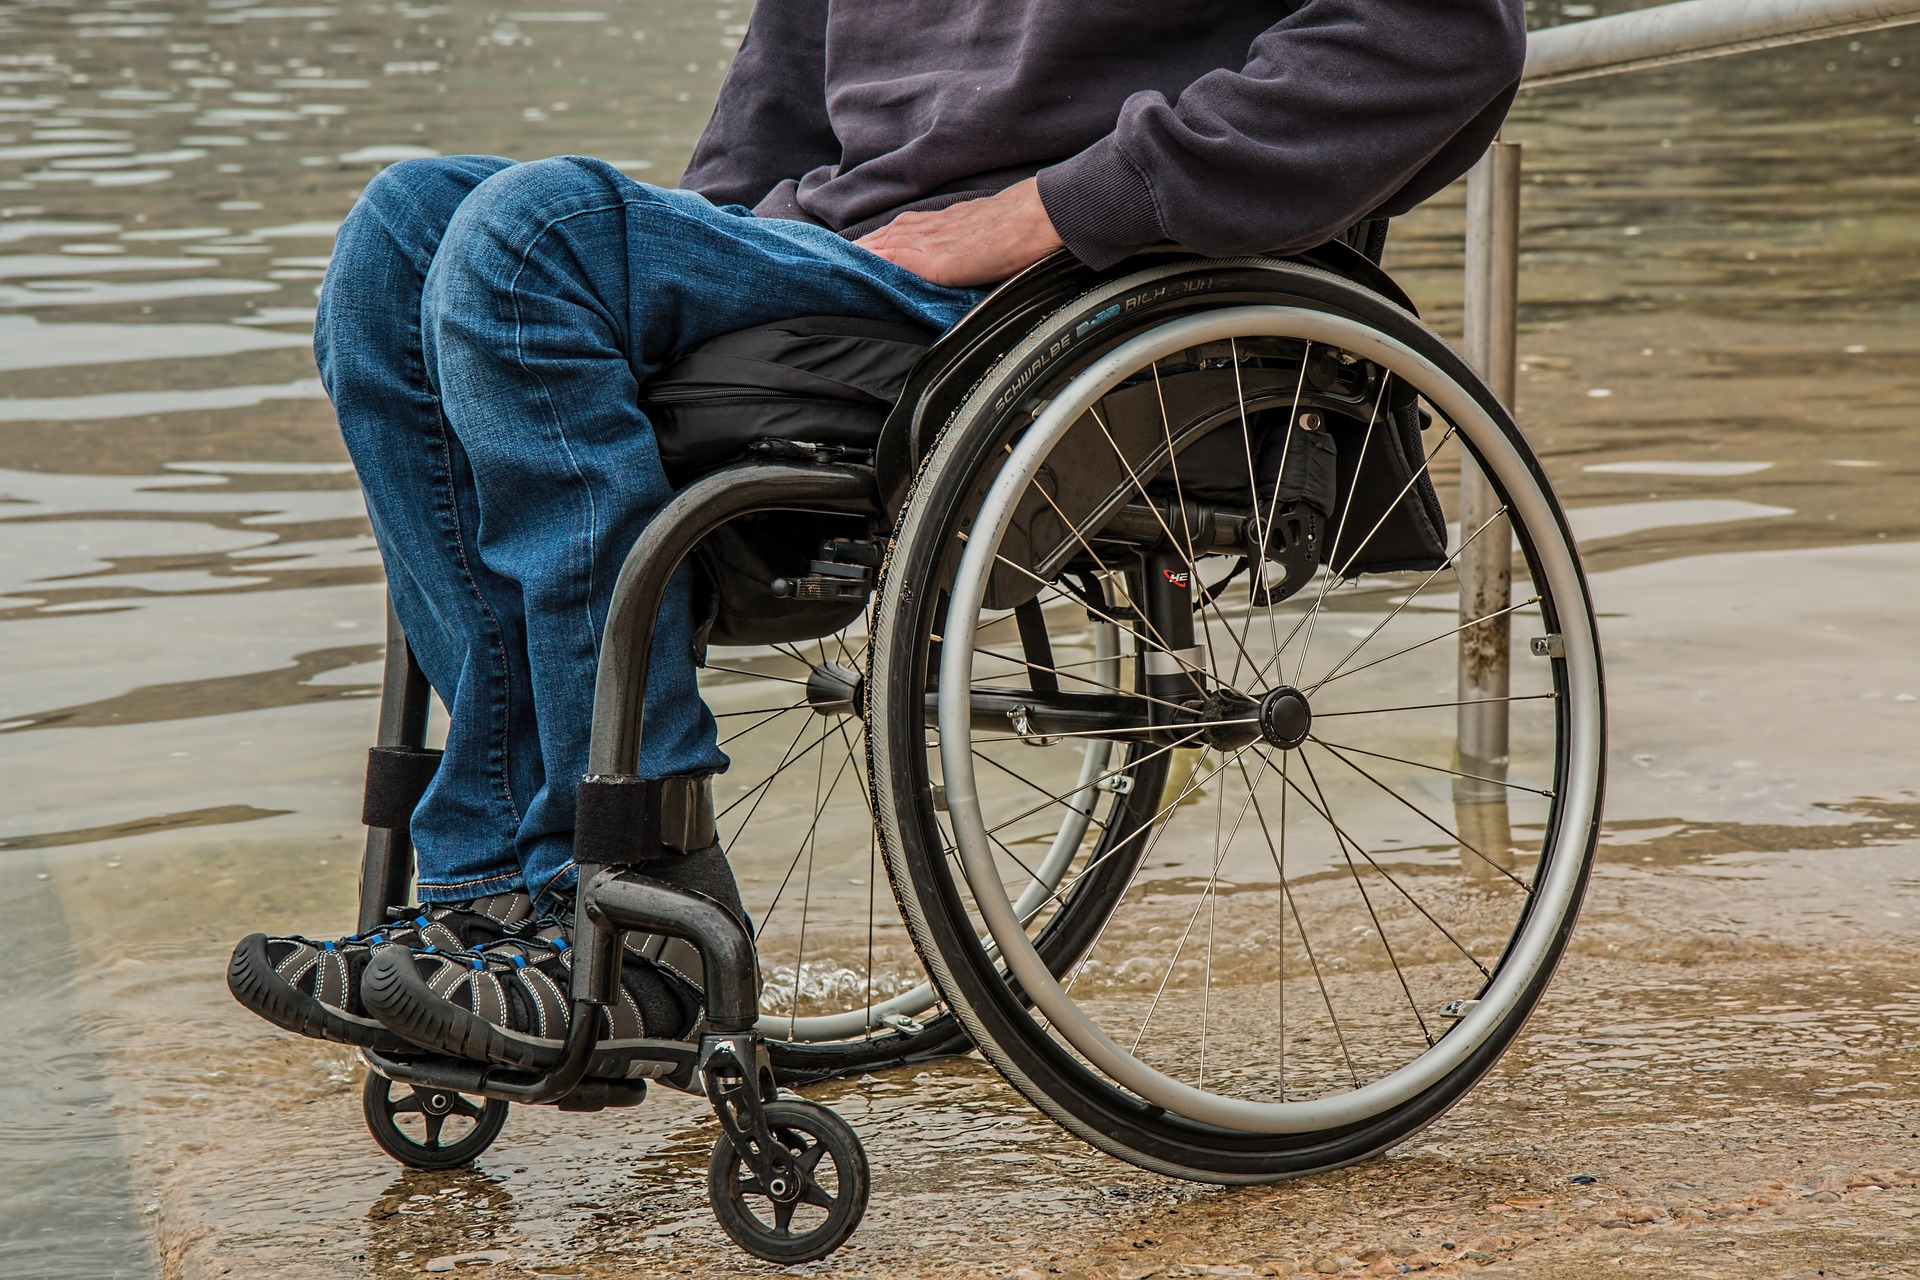 Risk of DVT in People Confined to Wheelchairs